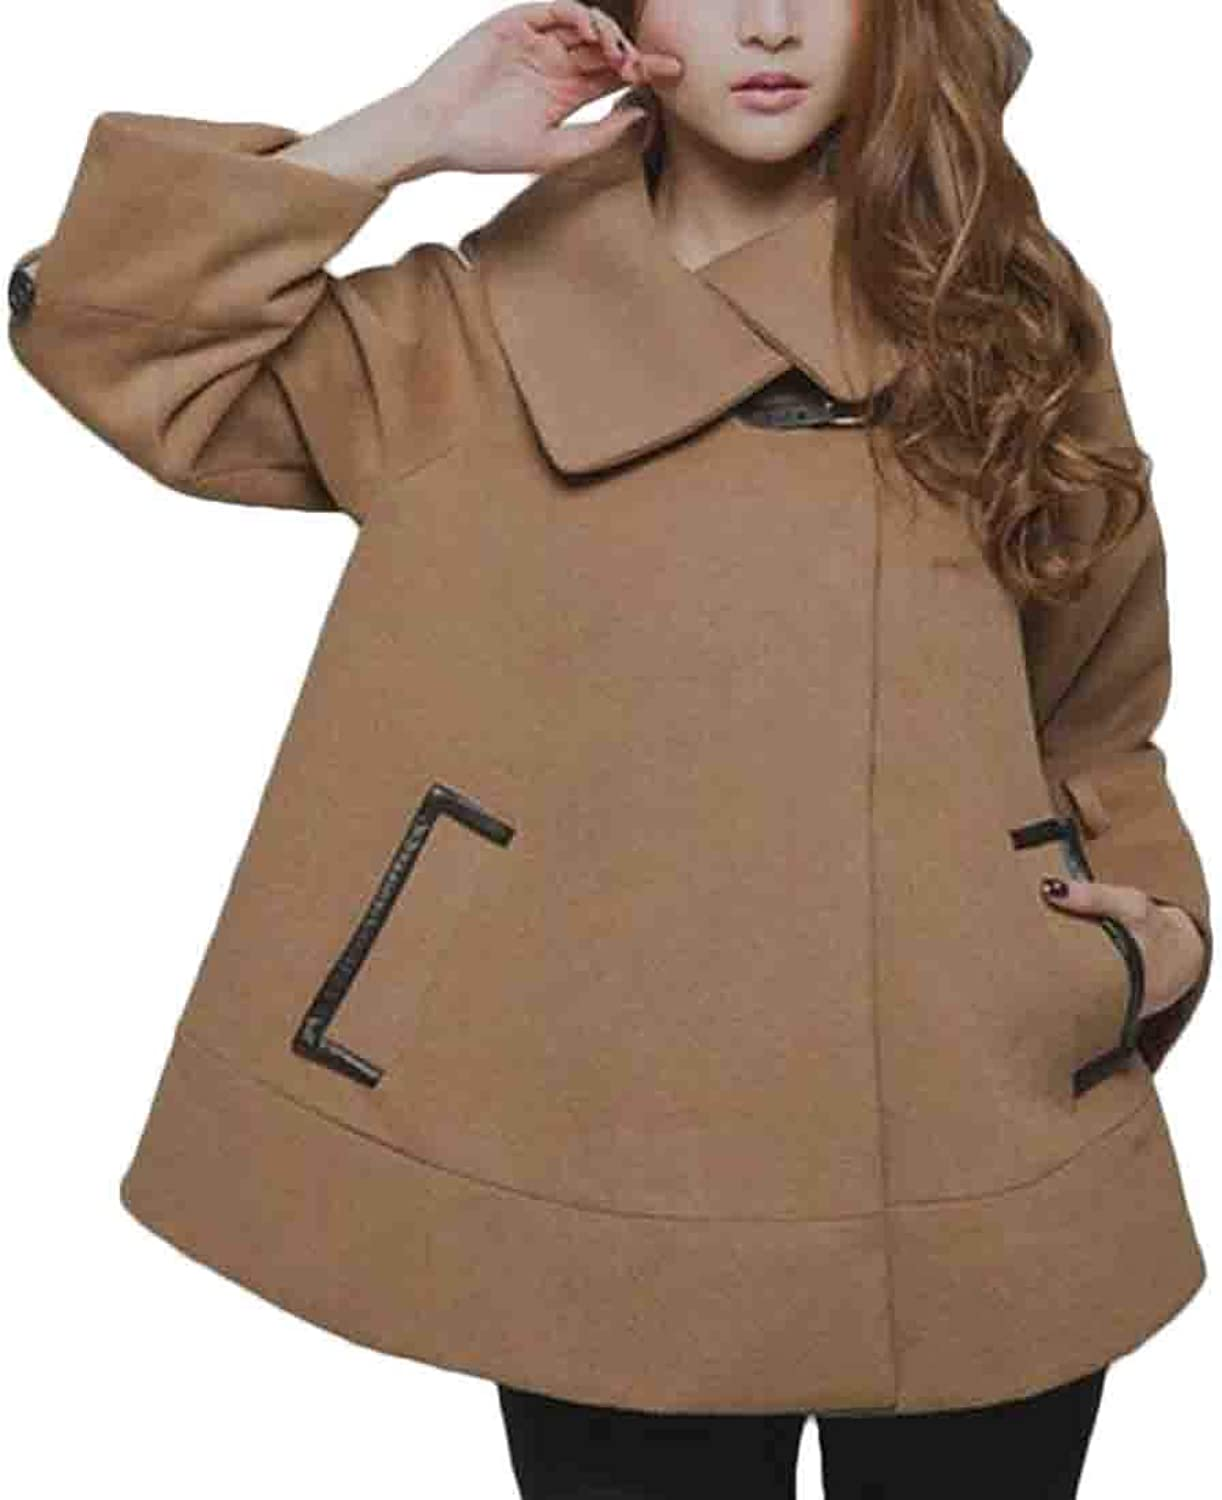 Ueioc Women Loose Fit Winter Cloak Overcoat Wool Cape Short Pea Coat